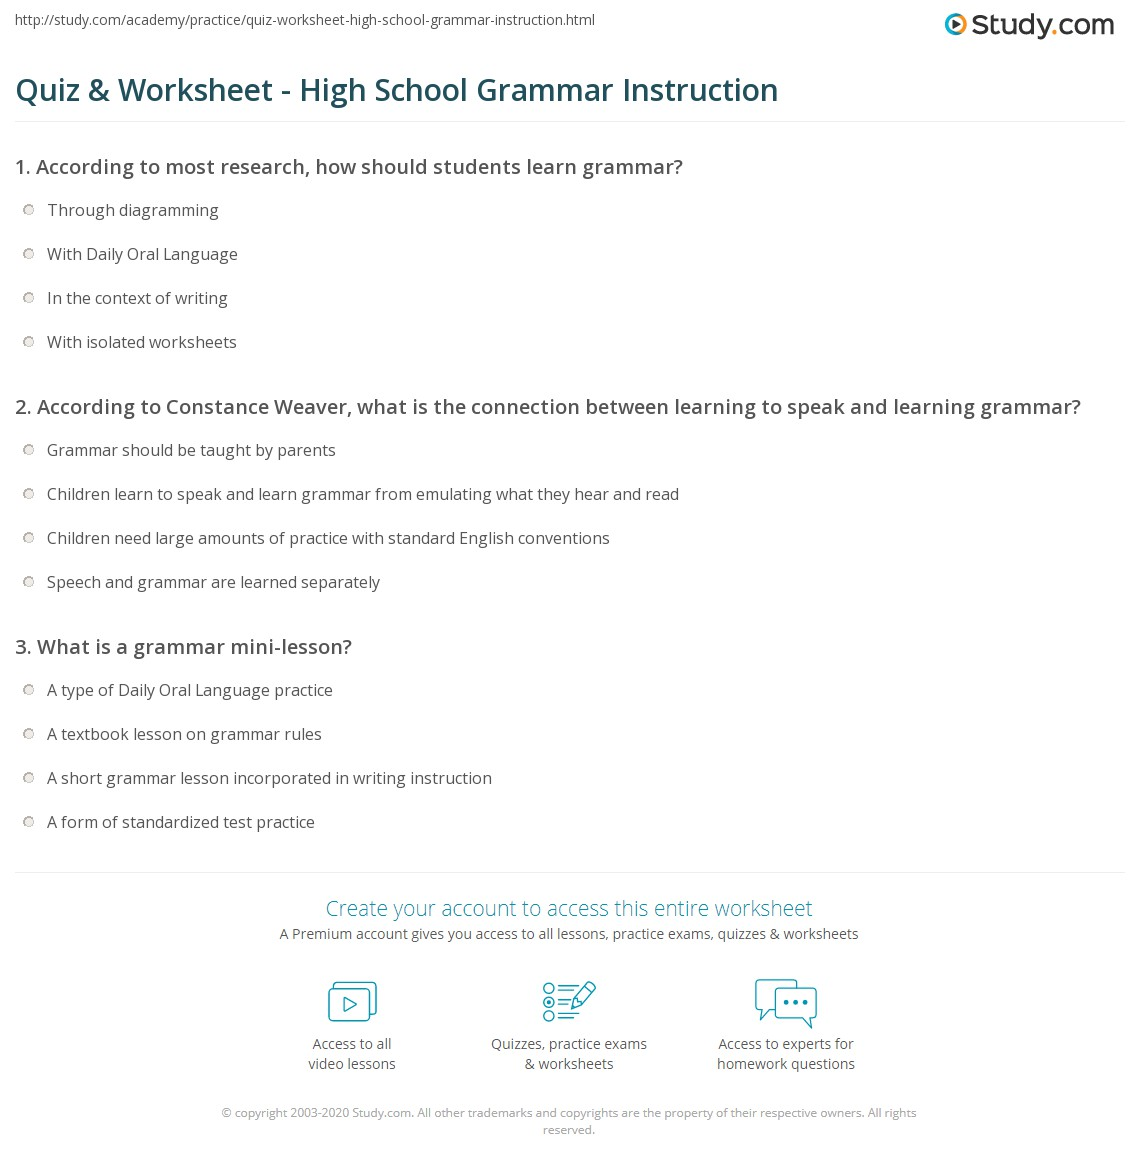 Free Worksheet Grammar Practice Worksheets High School quiz worksheet high school grammar instruction study com print teaching to students worksheet